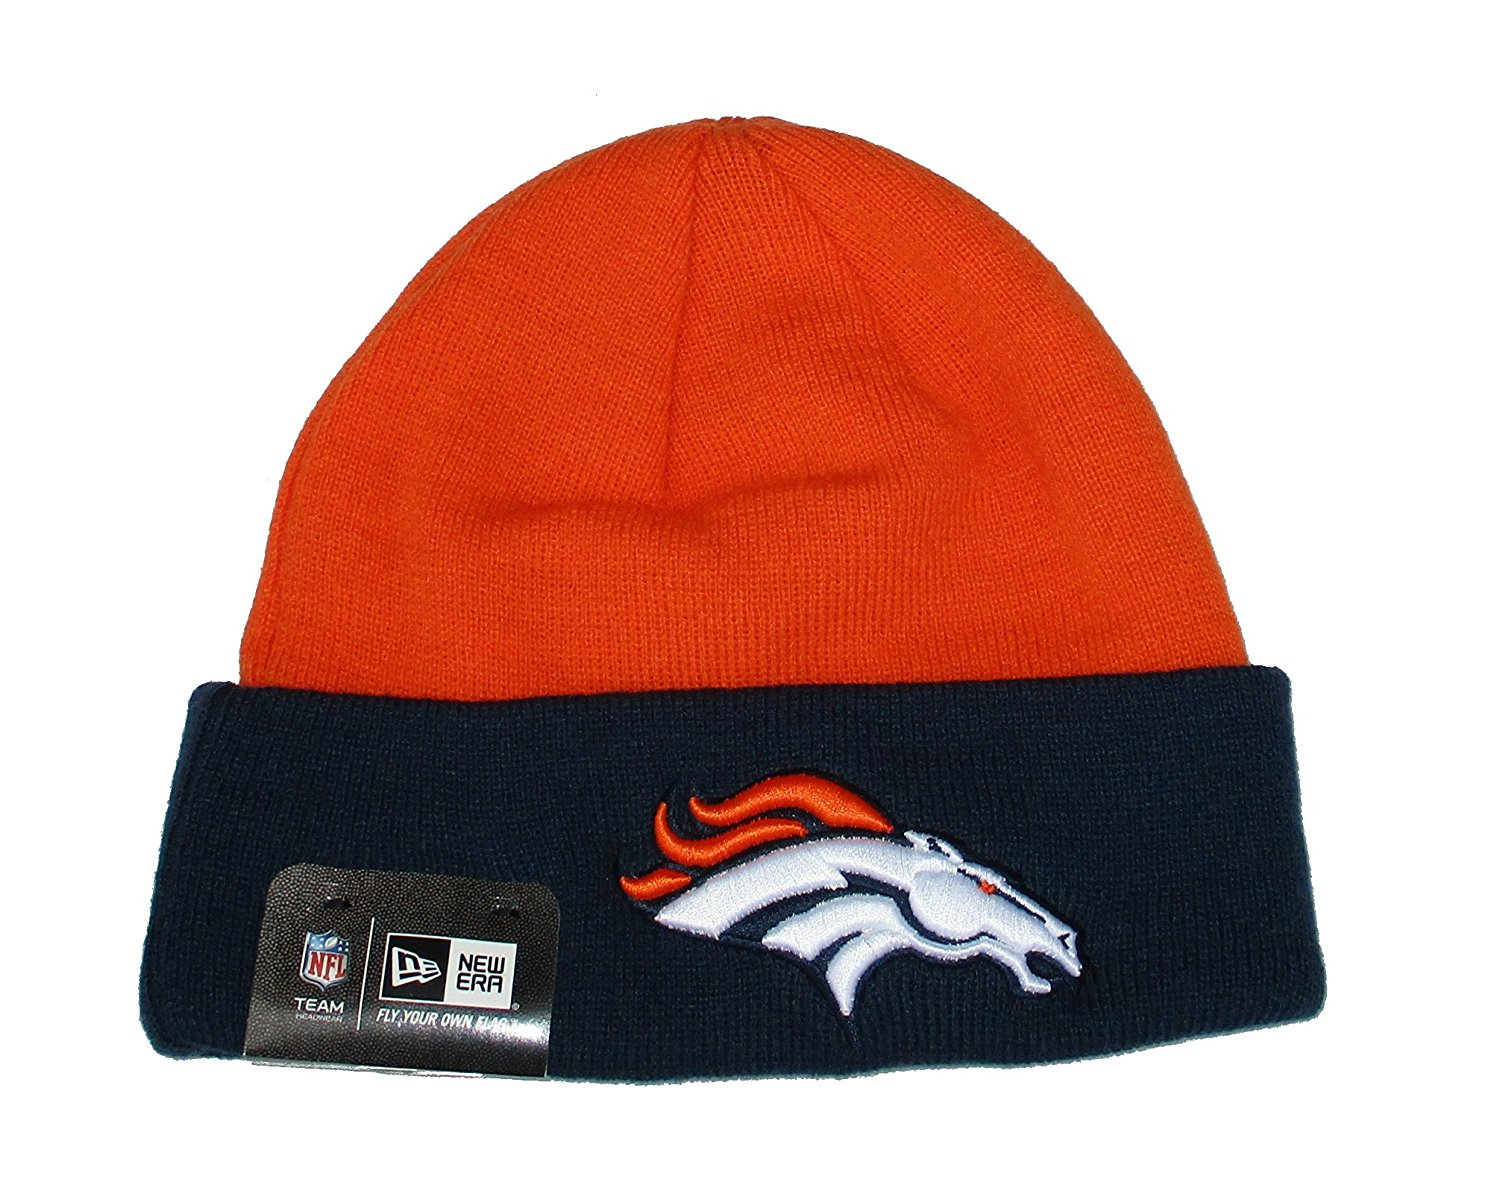 79f67a80 Buy Denver Broncos New Era Knit Cuff Beanie Hat Cap -Team Colors in ...